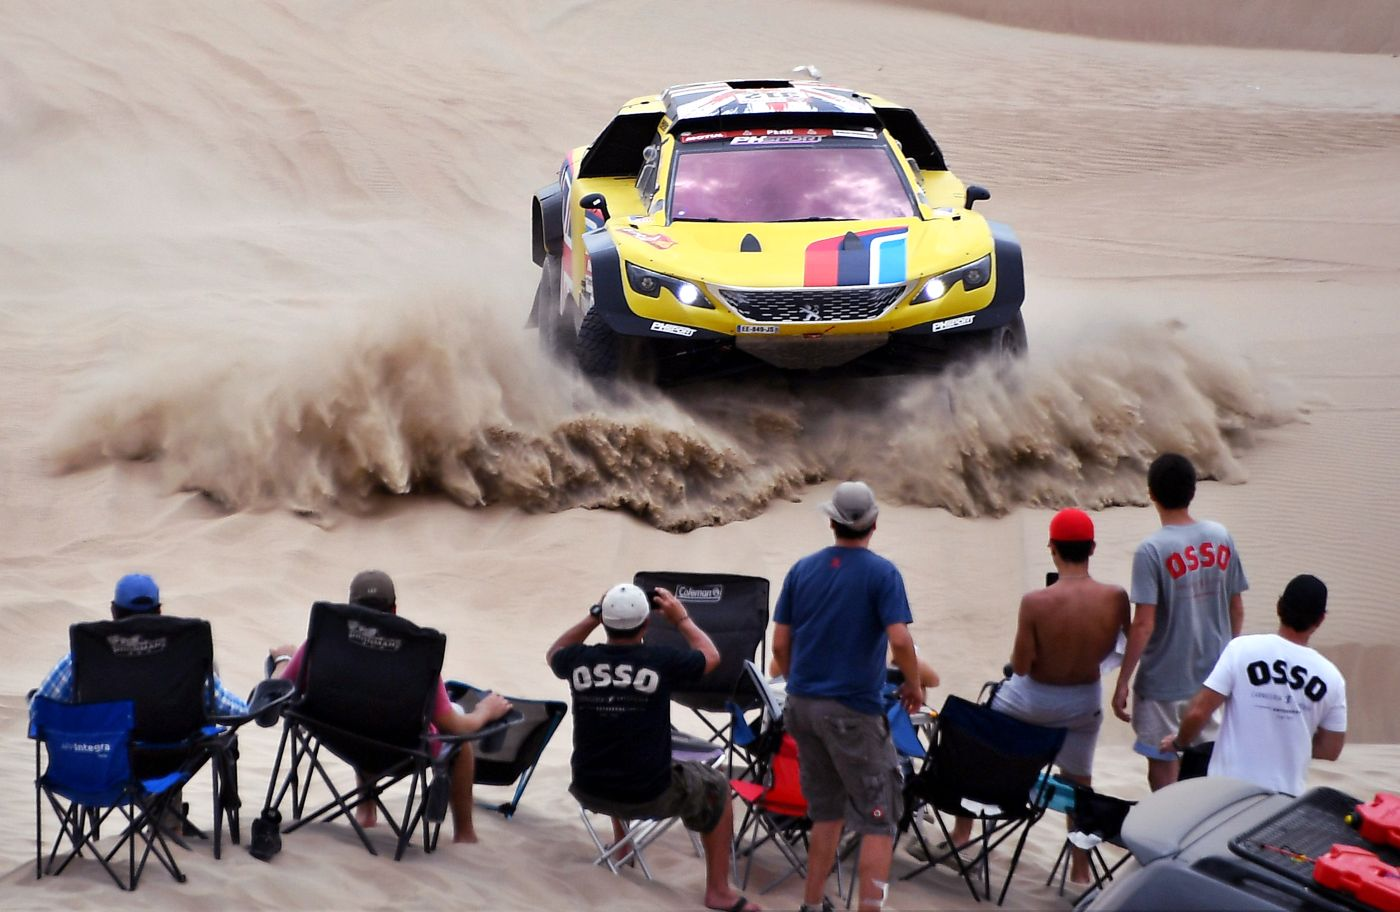 -- TOPSHOT - Peugeot's British driver Harry Hunt and Dutch co-driver Wouter Rosegarr compete during Stage 1 of the Dakar 2019 between Lima and Pisco, Peru, on January 7, 2019. Toyota's driver Nasser Al-Attiyah of Qatar and his co-driver Mathieu Baumel of France won the stage. / AFP / FRANCK FIFE